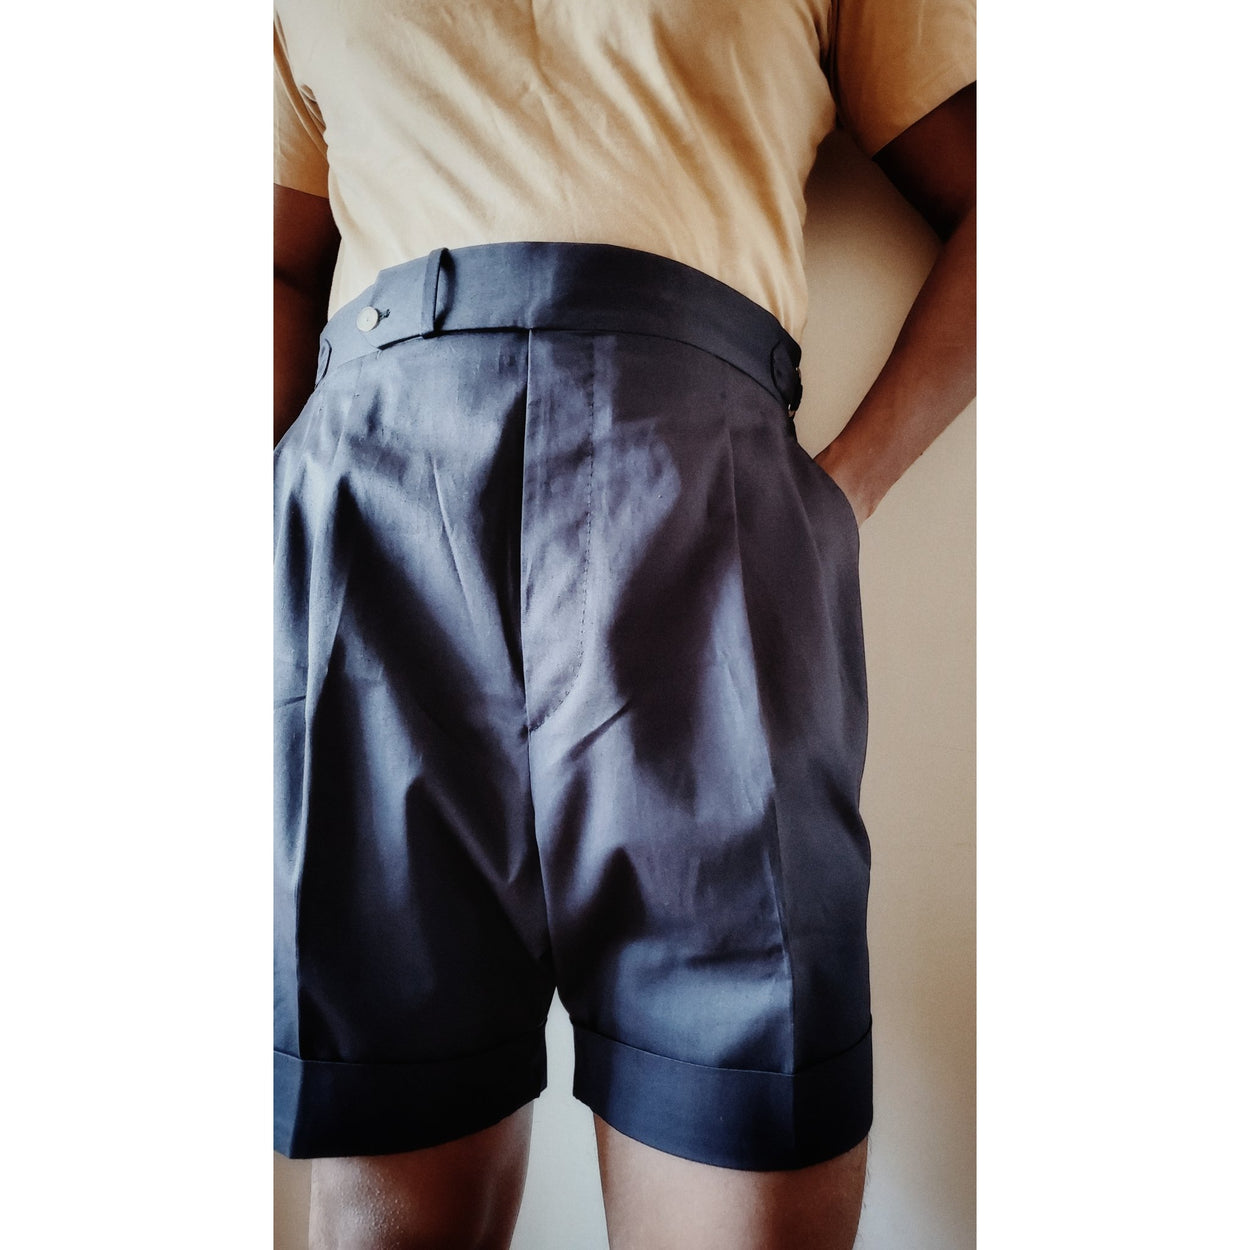 High Waisted Shorts - Cotton Panama - X Of Pentacles